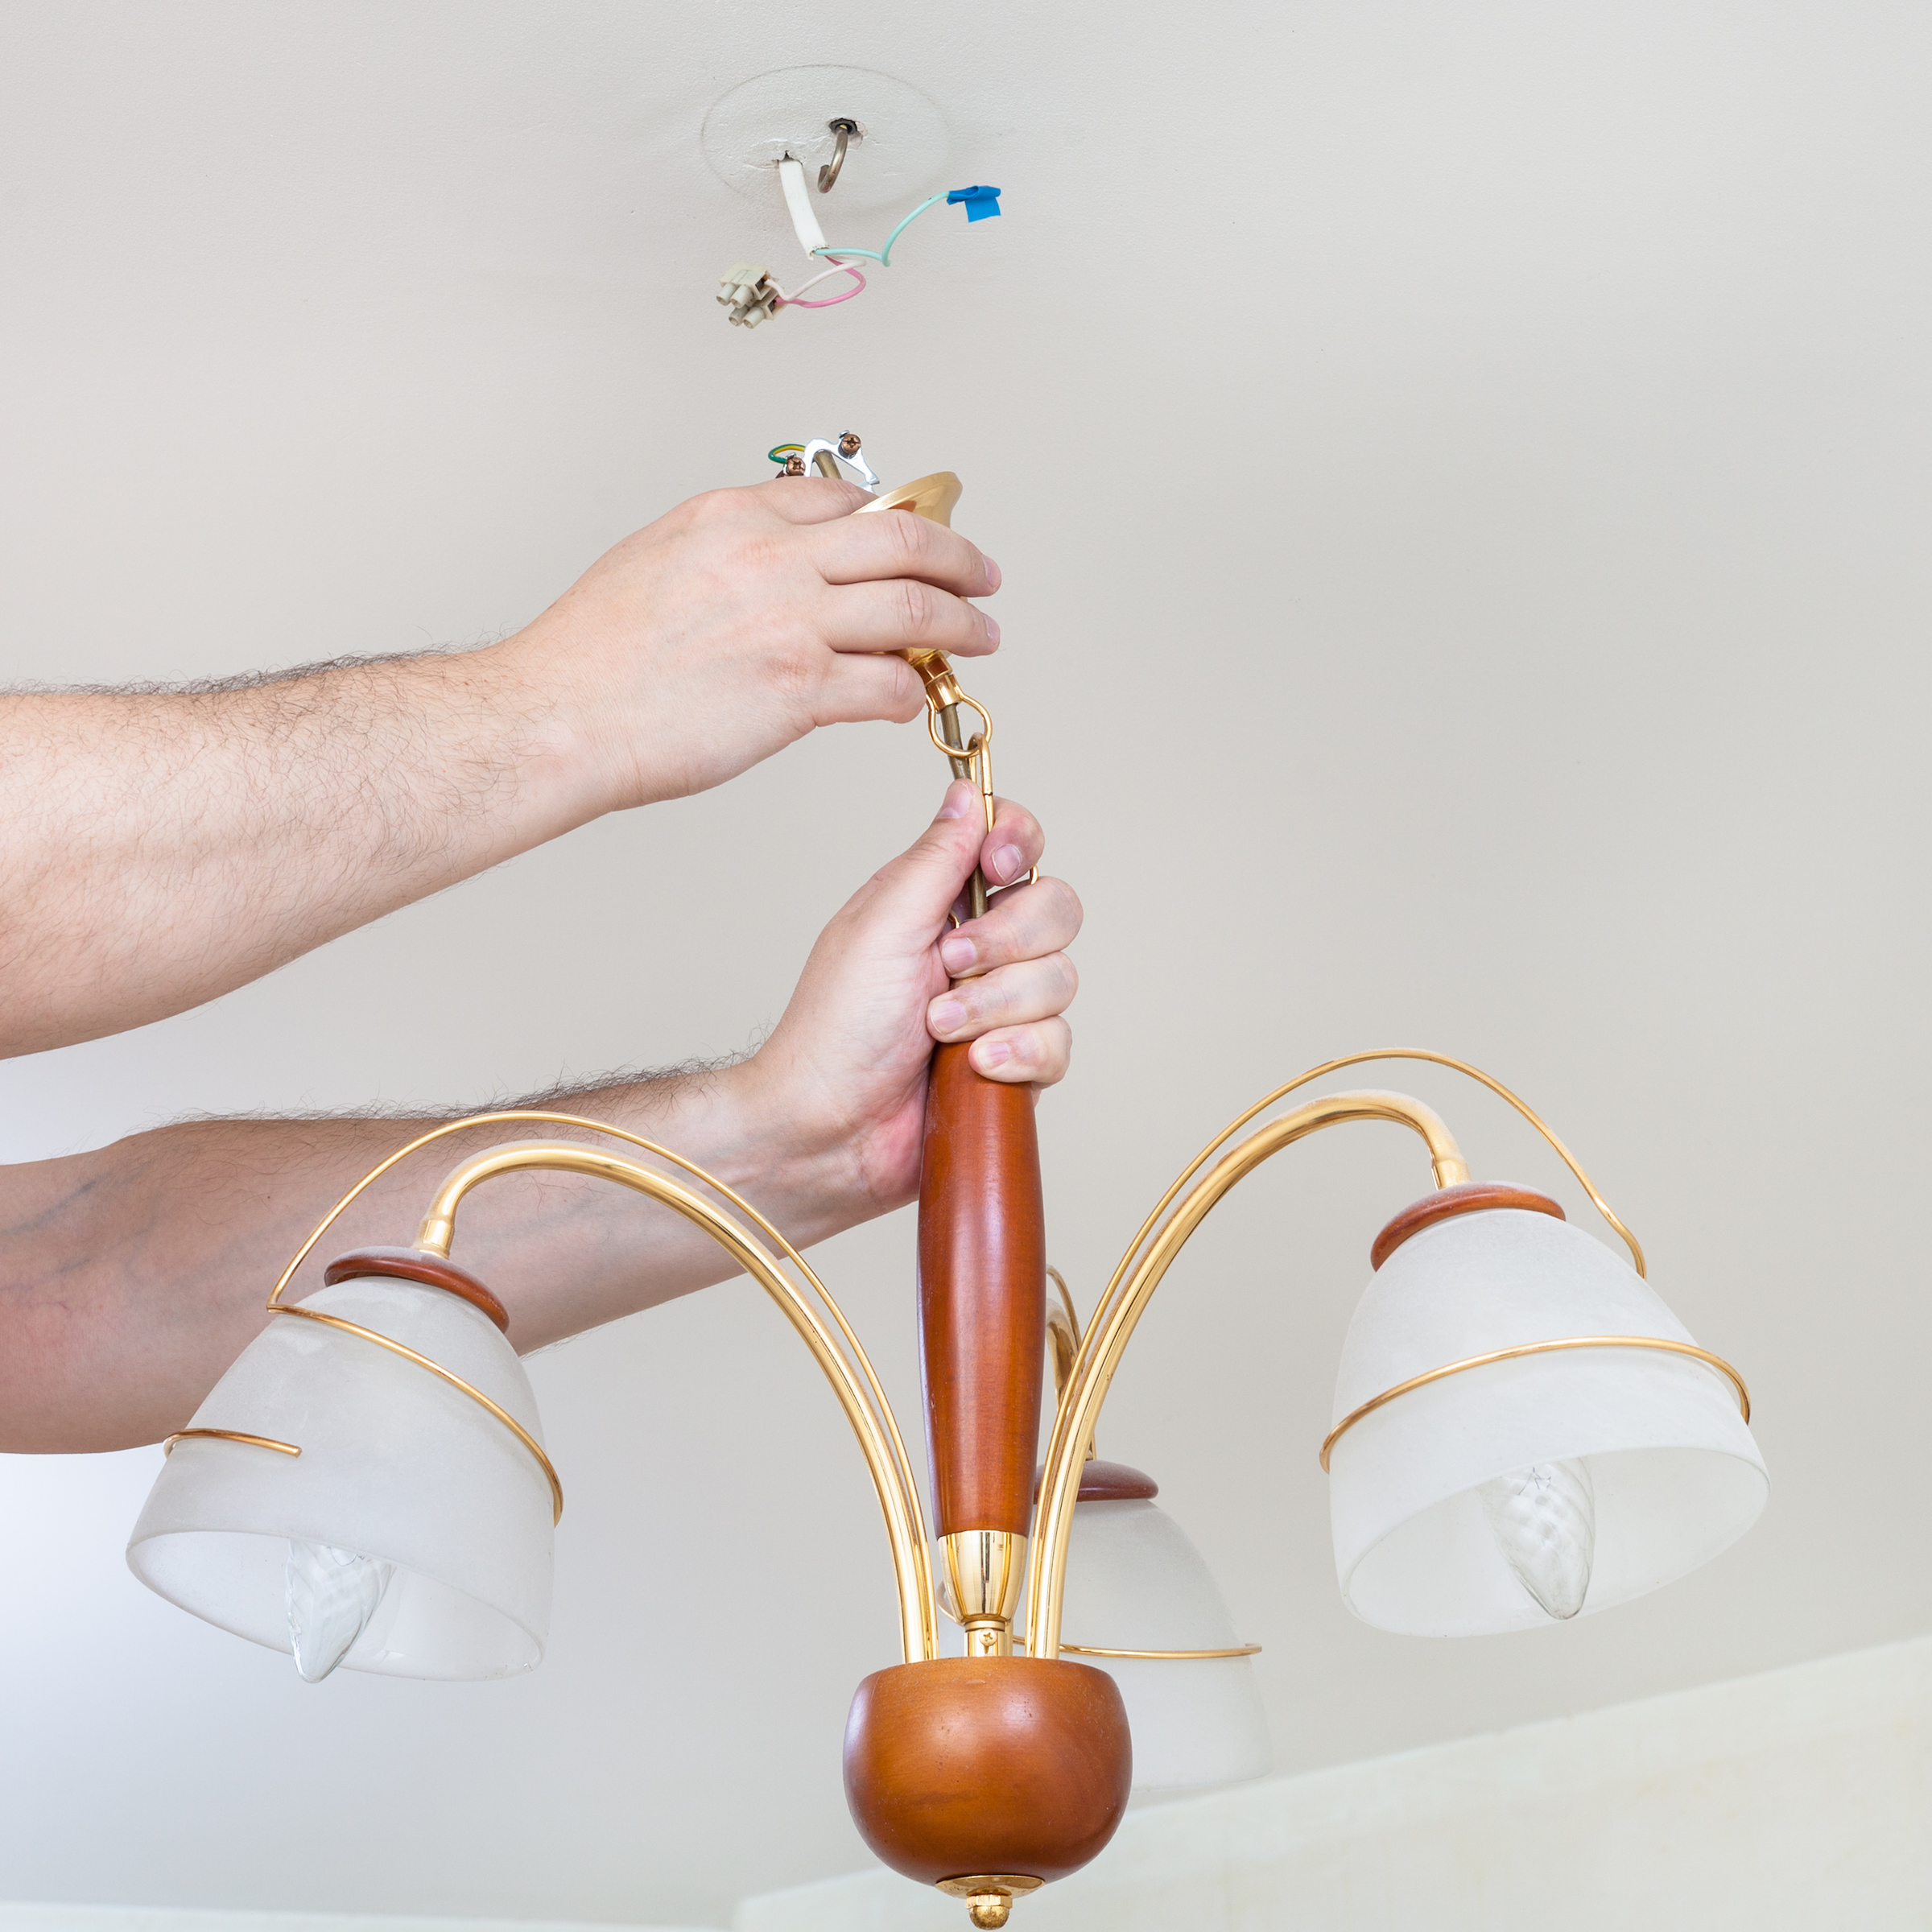 How to install a light fixture, step-by-step